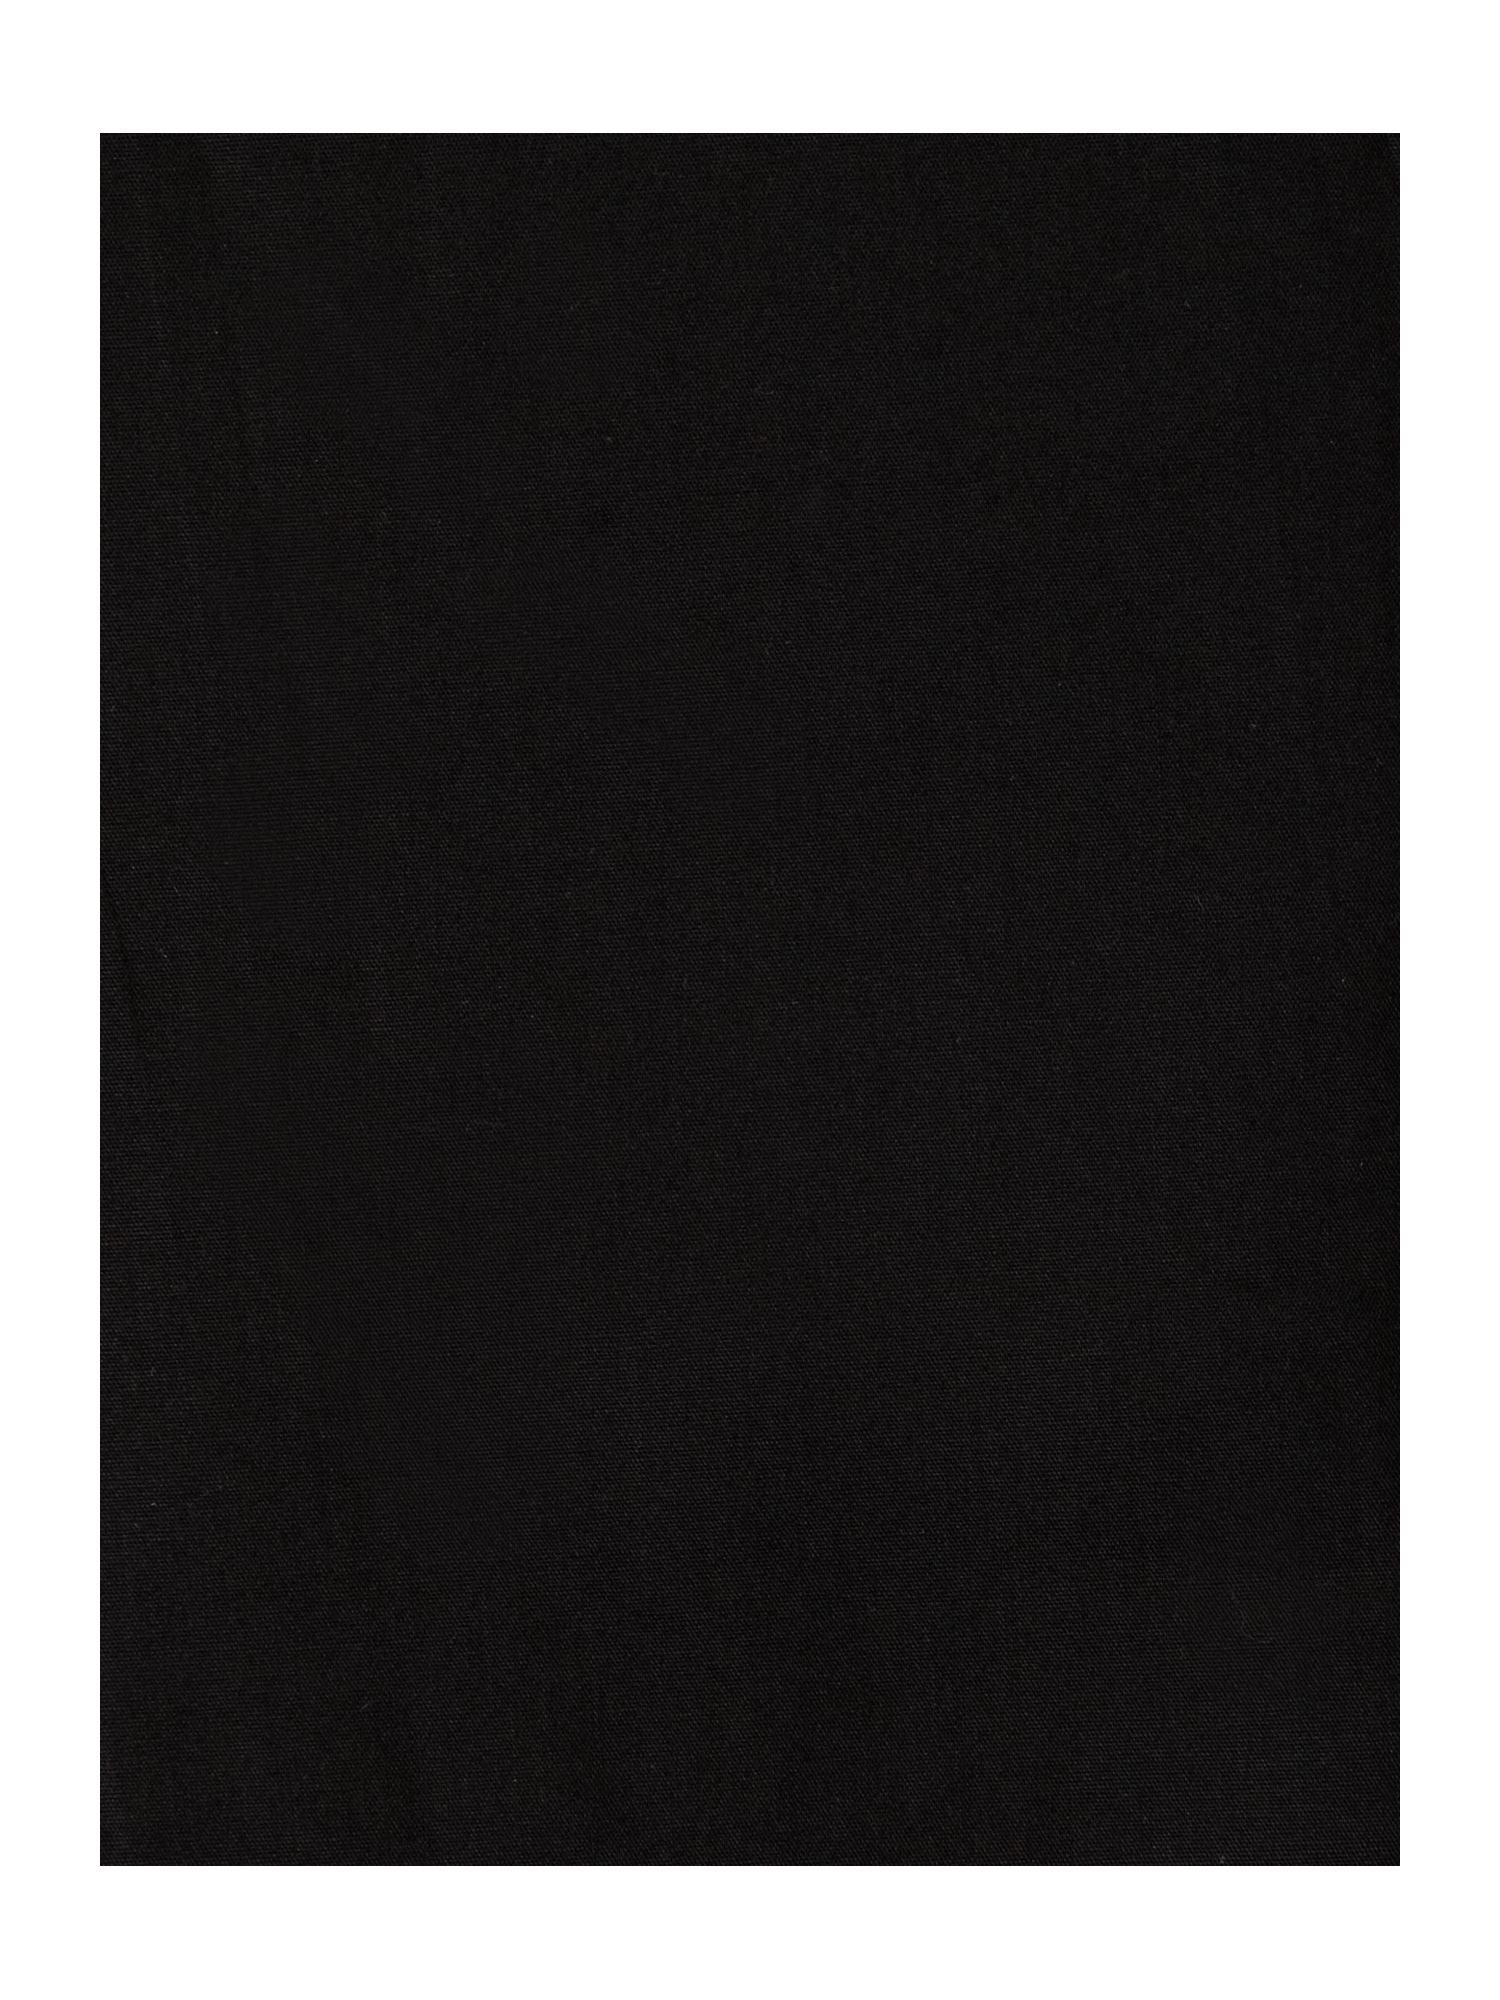 100% cotton percale bed linen in black